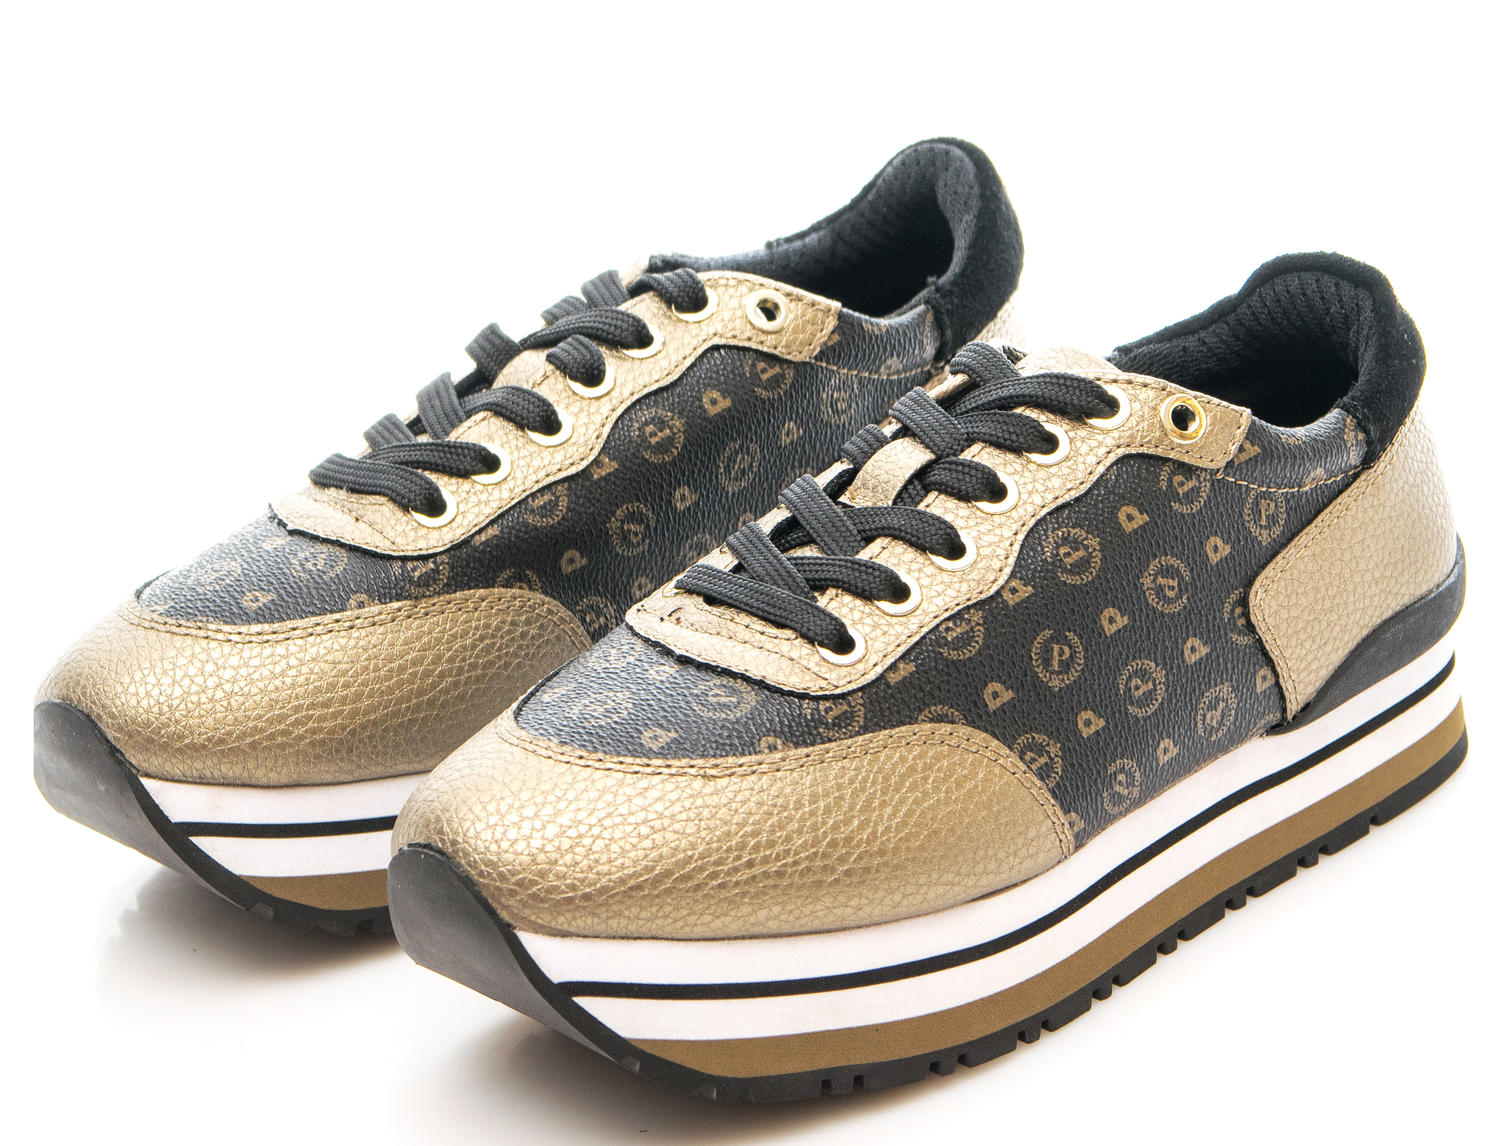 33130f2b3f Sneakers Pollini Heritage Bronze/black - Acquista A Prezzi Outlet!